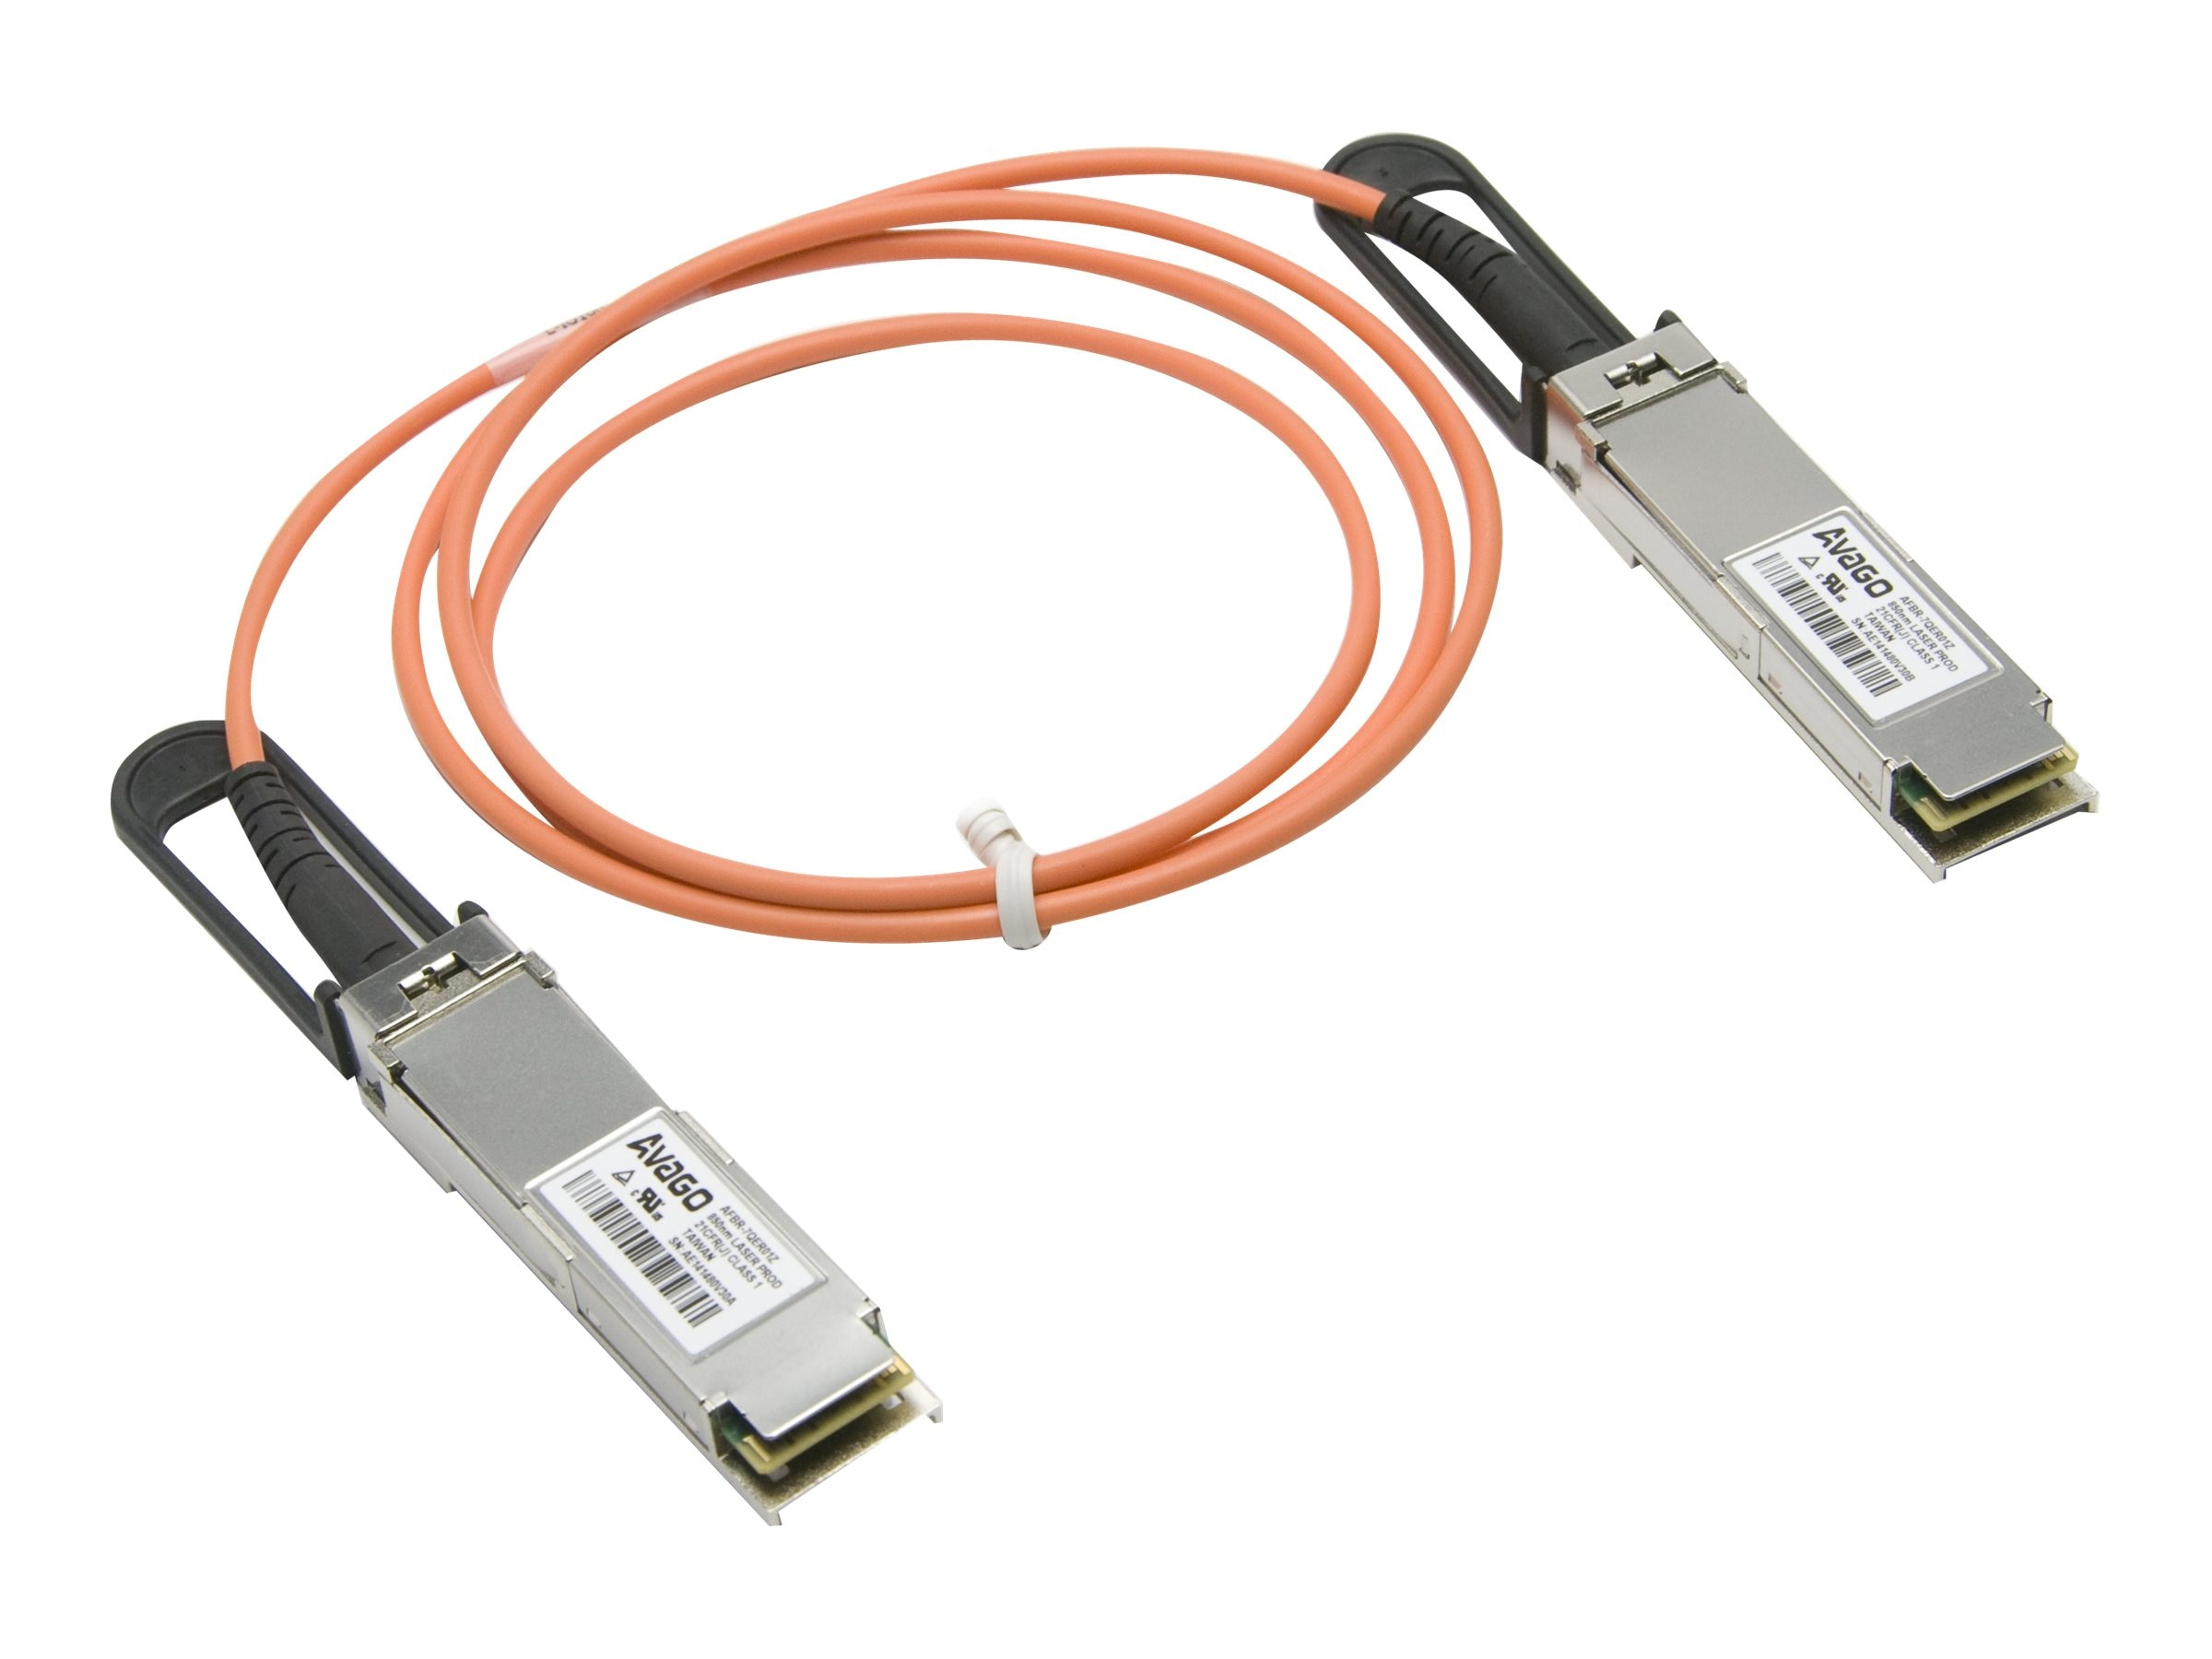 Supermicro 40G QSFP+ Active Optical Cable, 5m, CBL-QSFP+AOC-5M